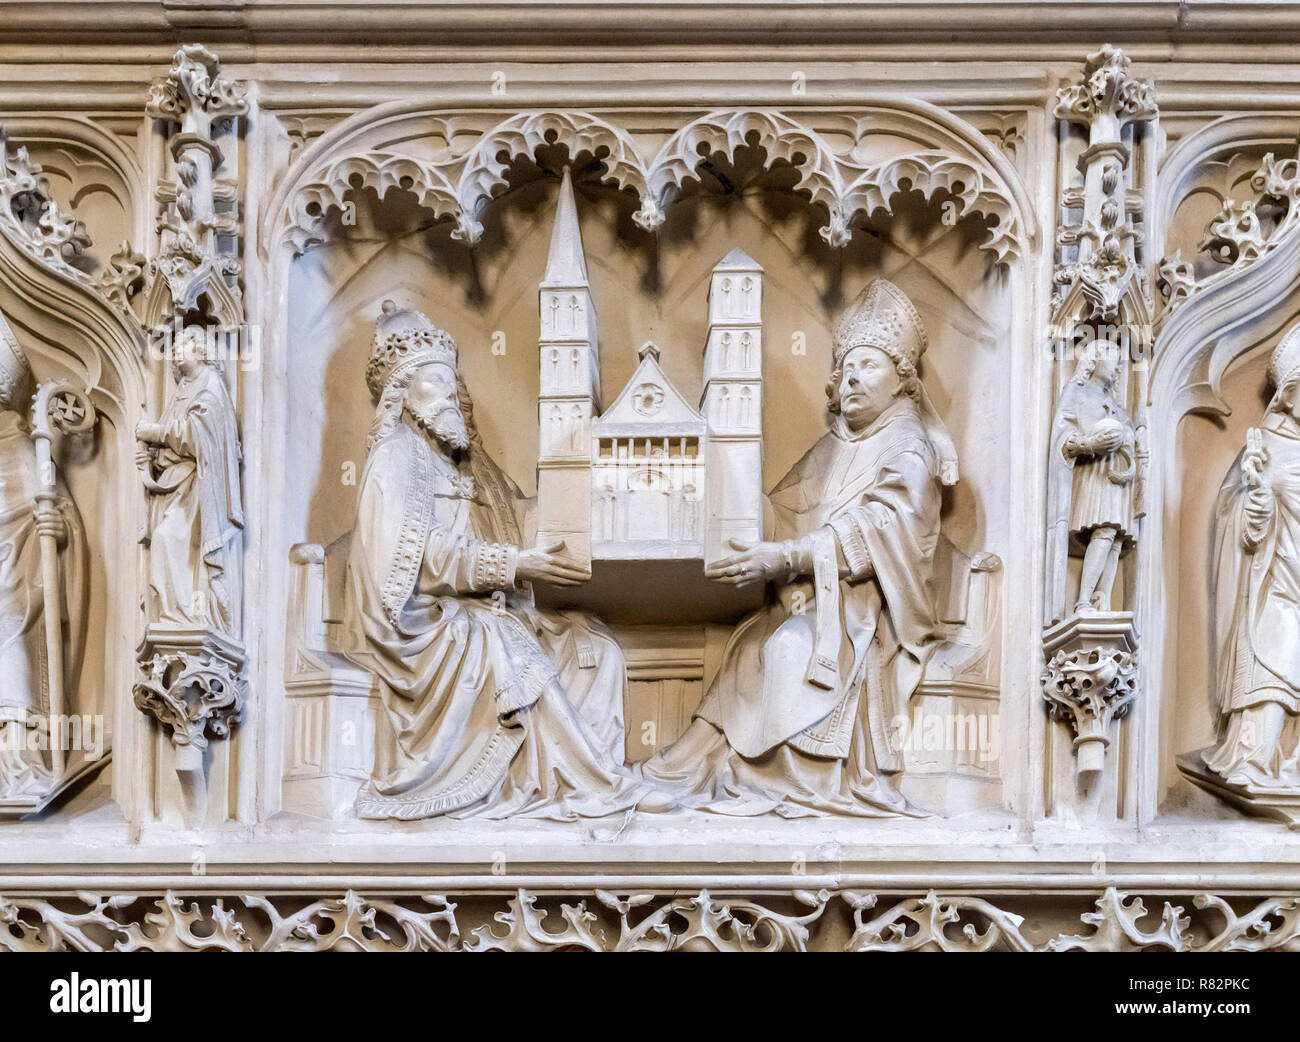 Carvings under the organ loft in Bremen Cathedral (St Petri Dom), Bremen, Germany Stock Photo